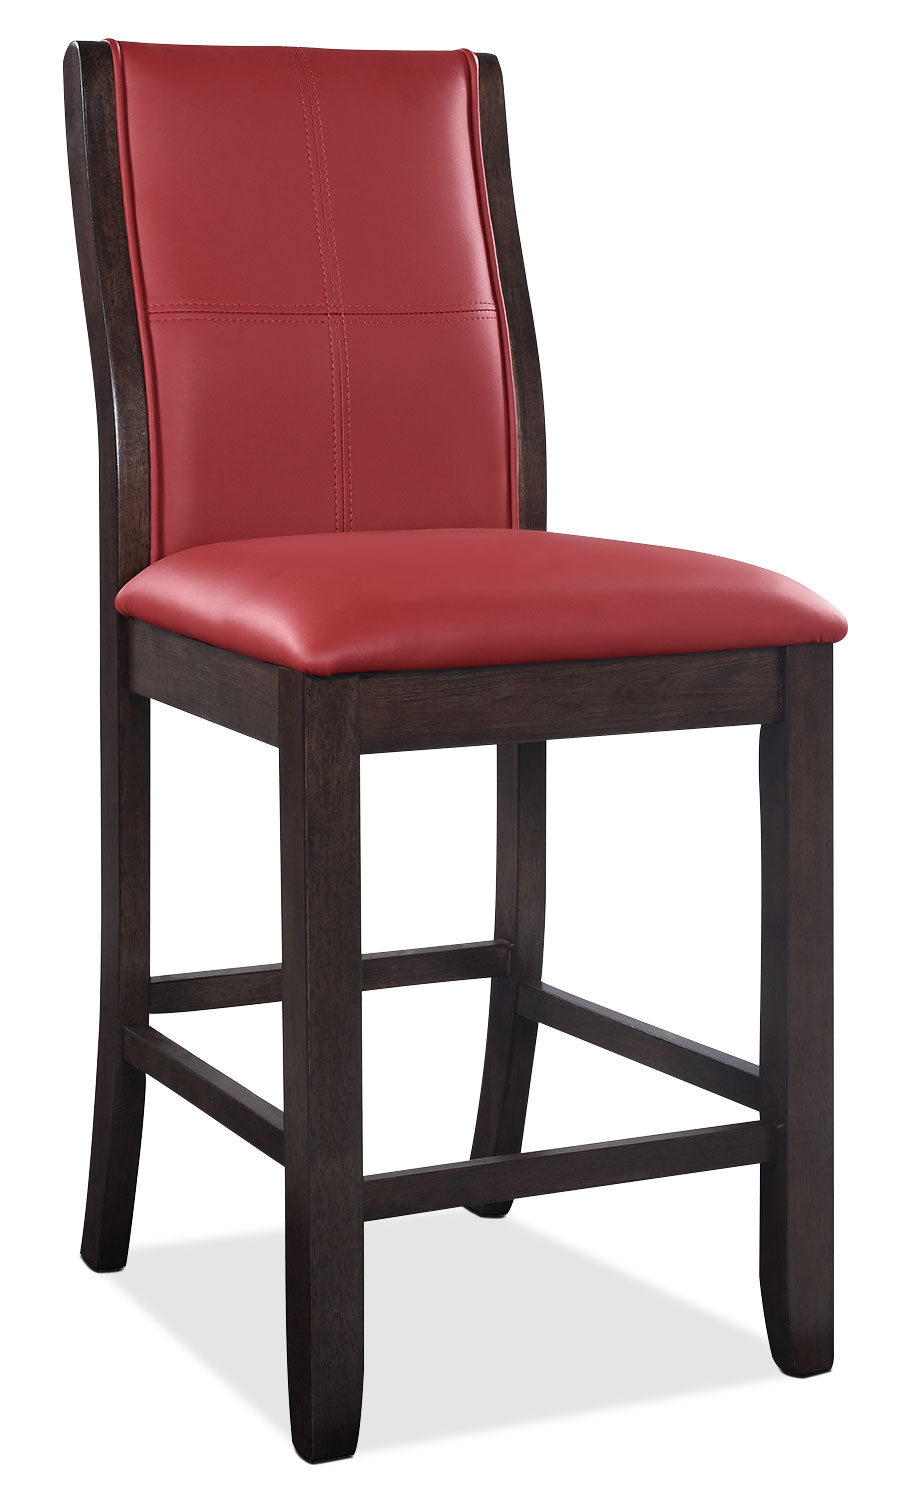 Tyler Counter-Height Dining Chair – Red